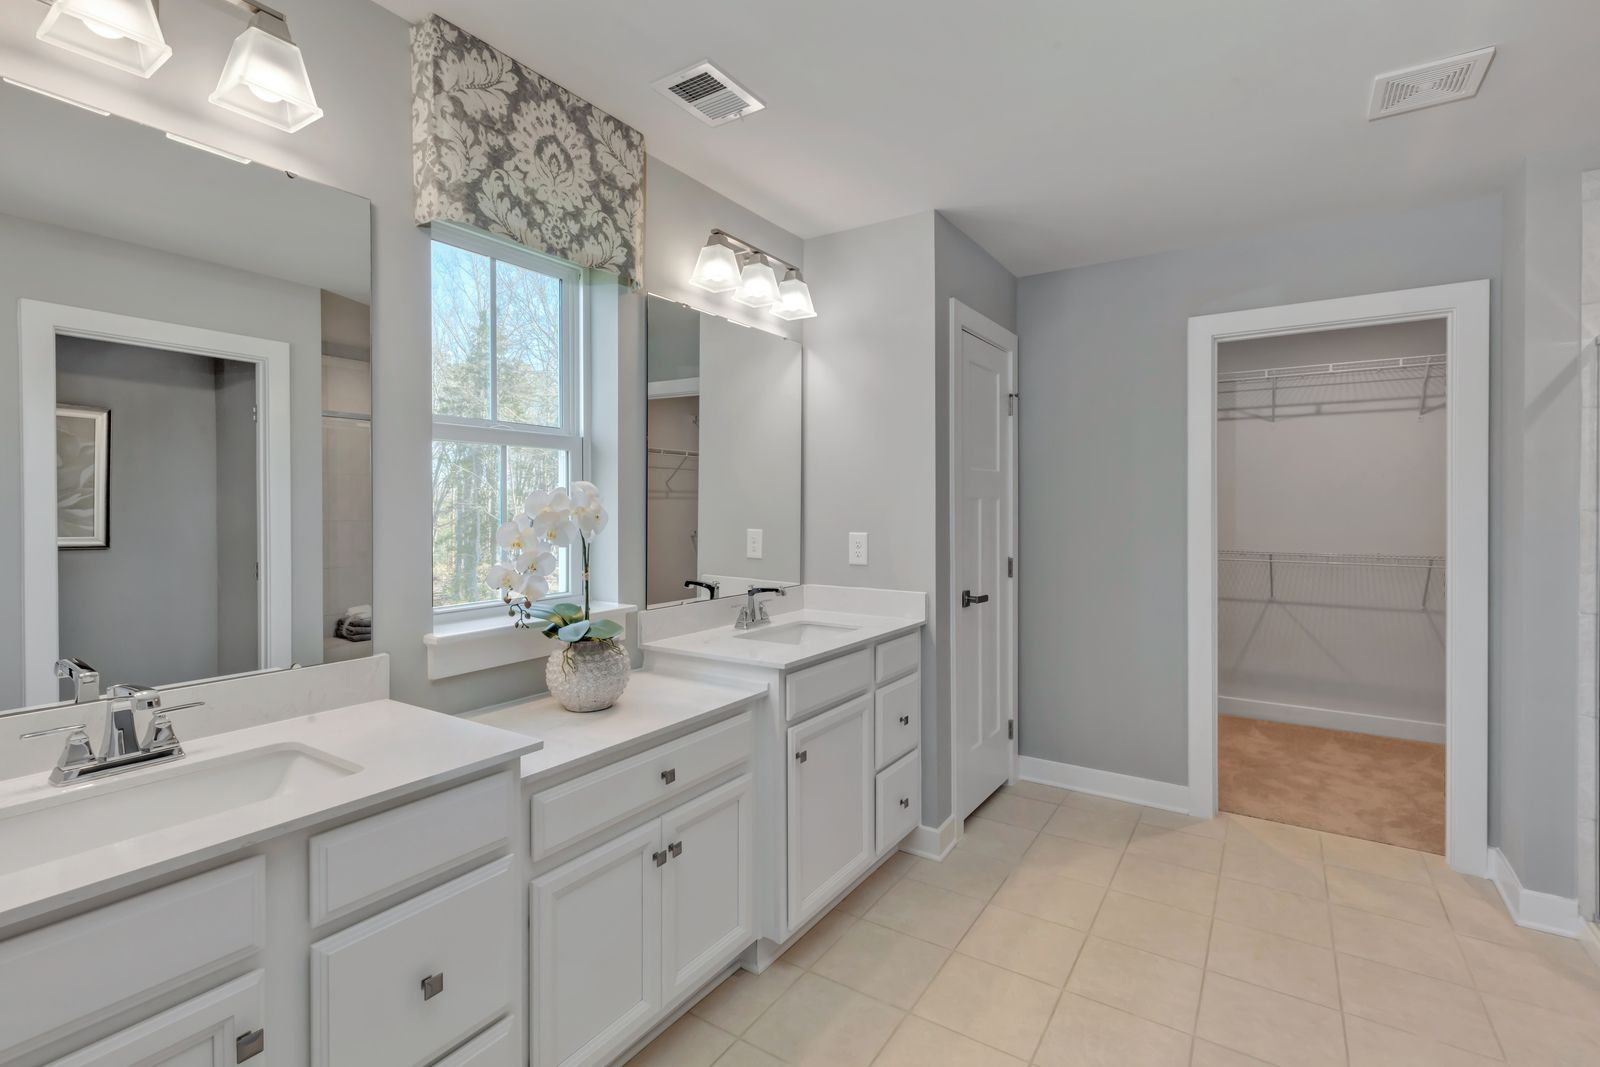 Bathroom featured in the Hudson By Ryan Homes in Philadelphia, NJ